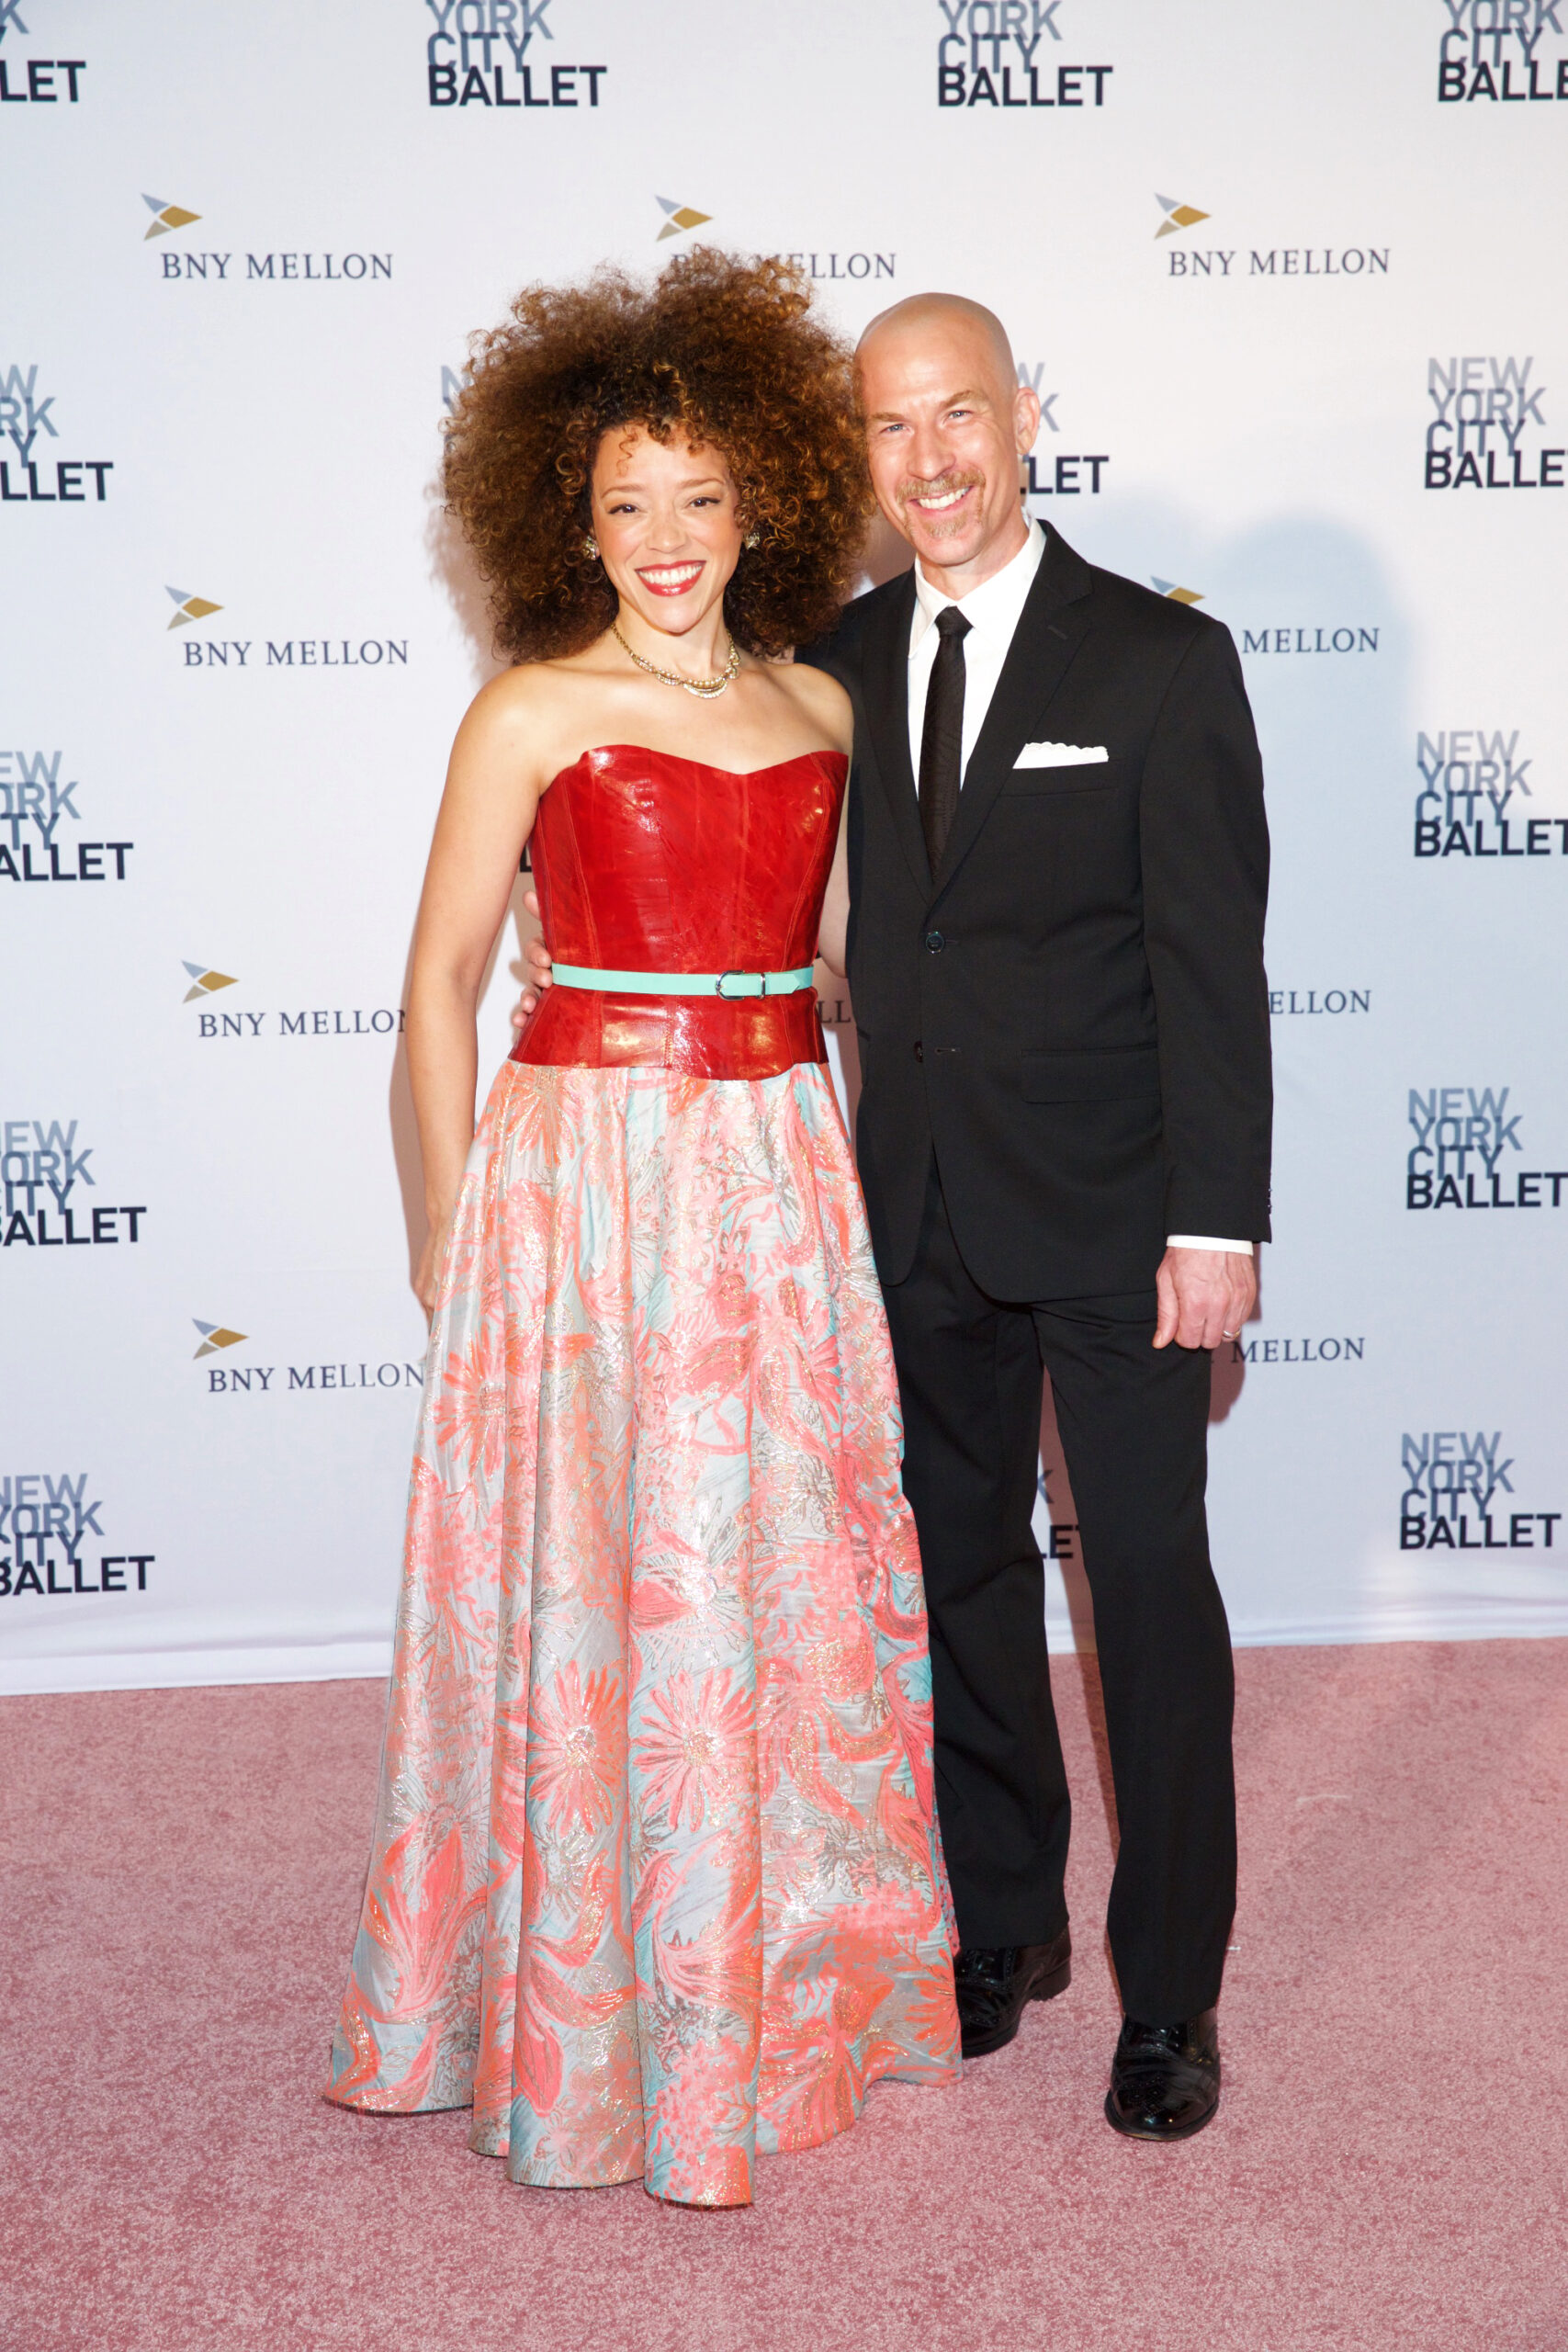 Marcy and Rob Harriell in formal outfits in front of New York City Ballet gala backdrop.